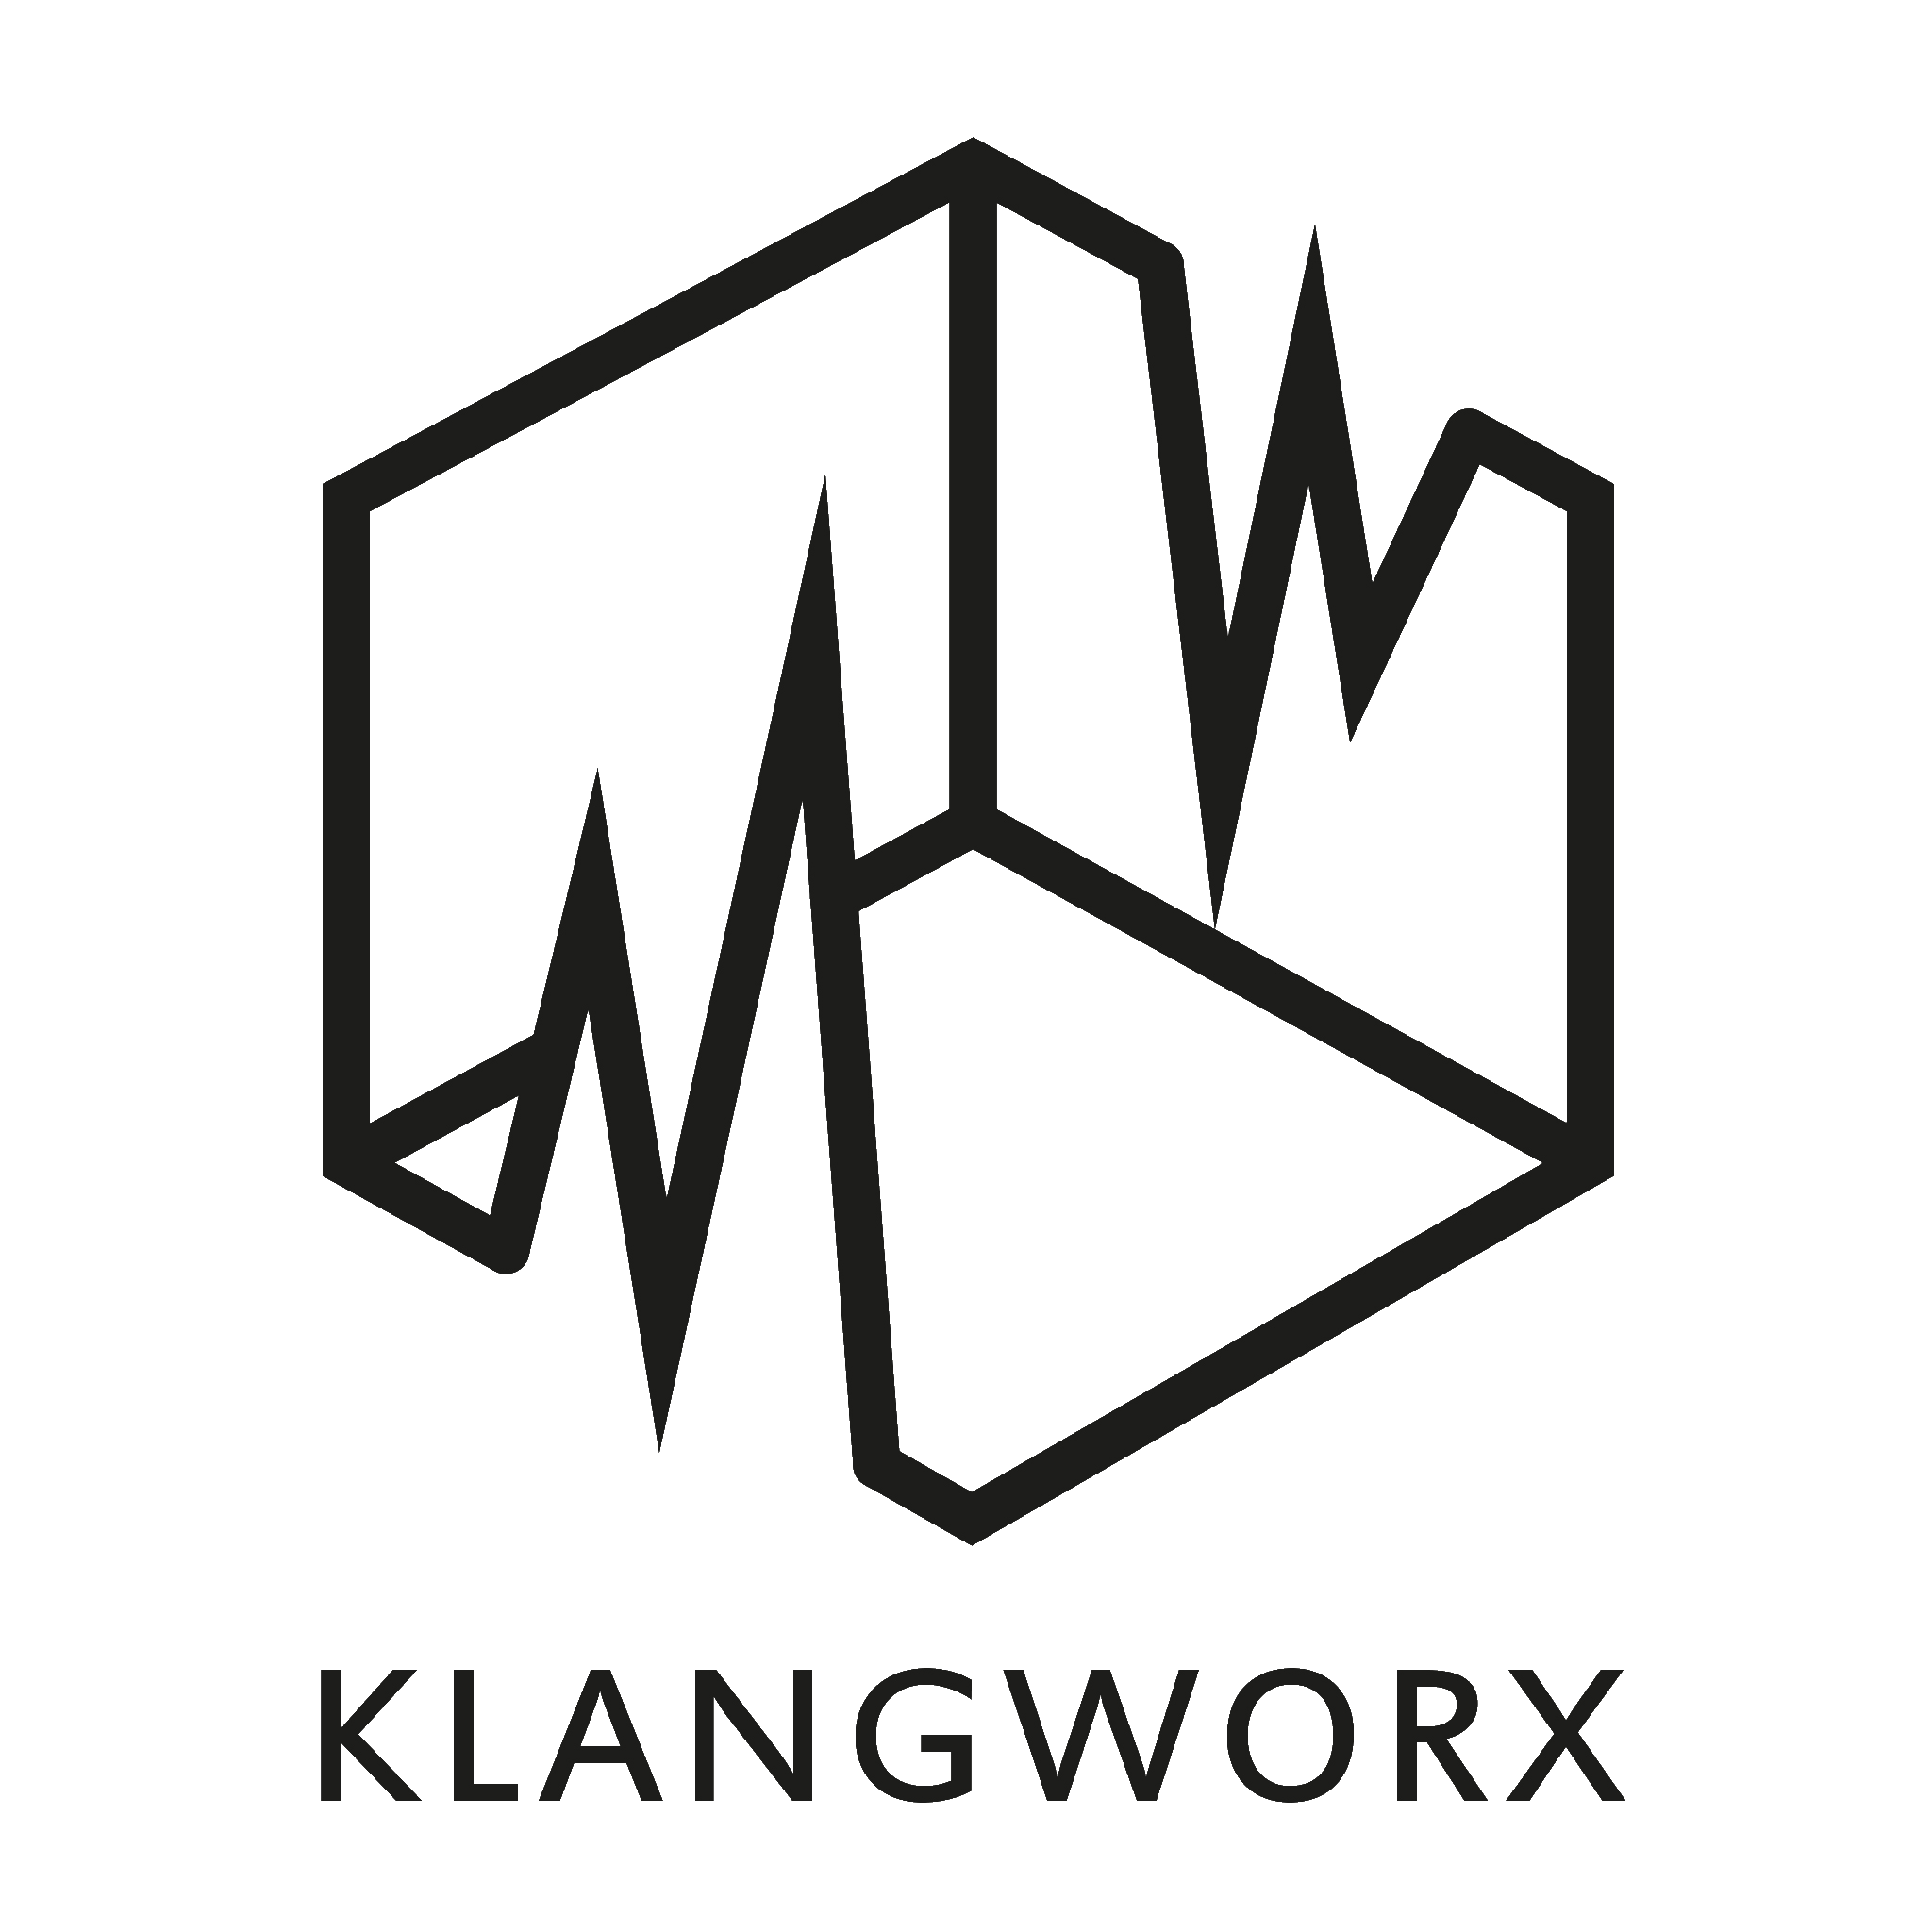 KLANGWORX - The underground techno music record label that injects quality in your playlist.